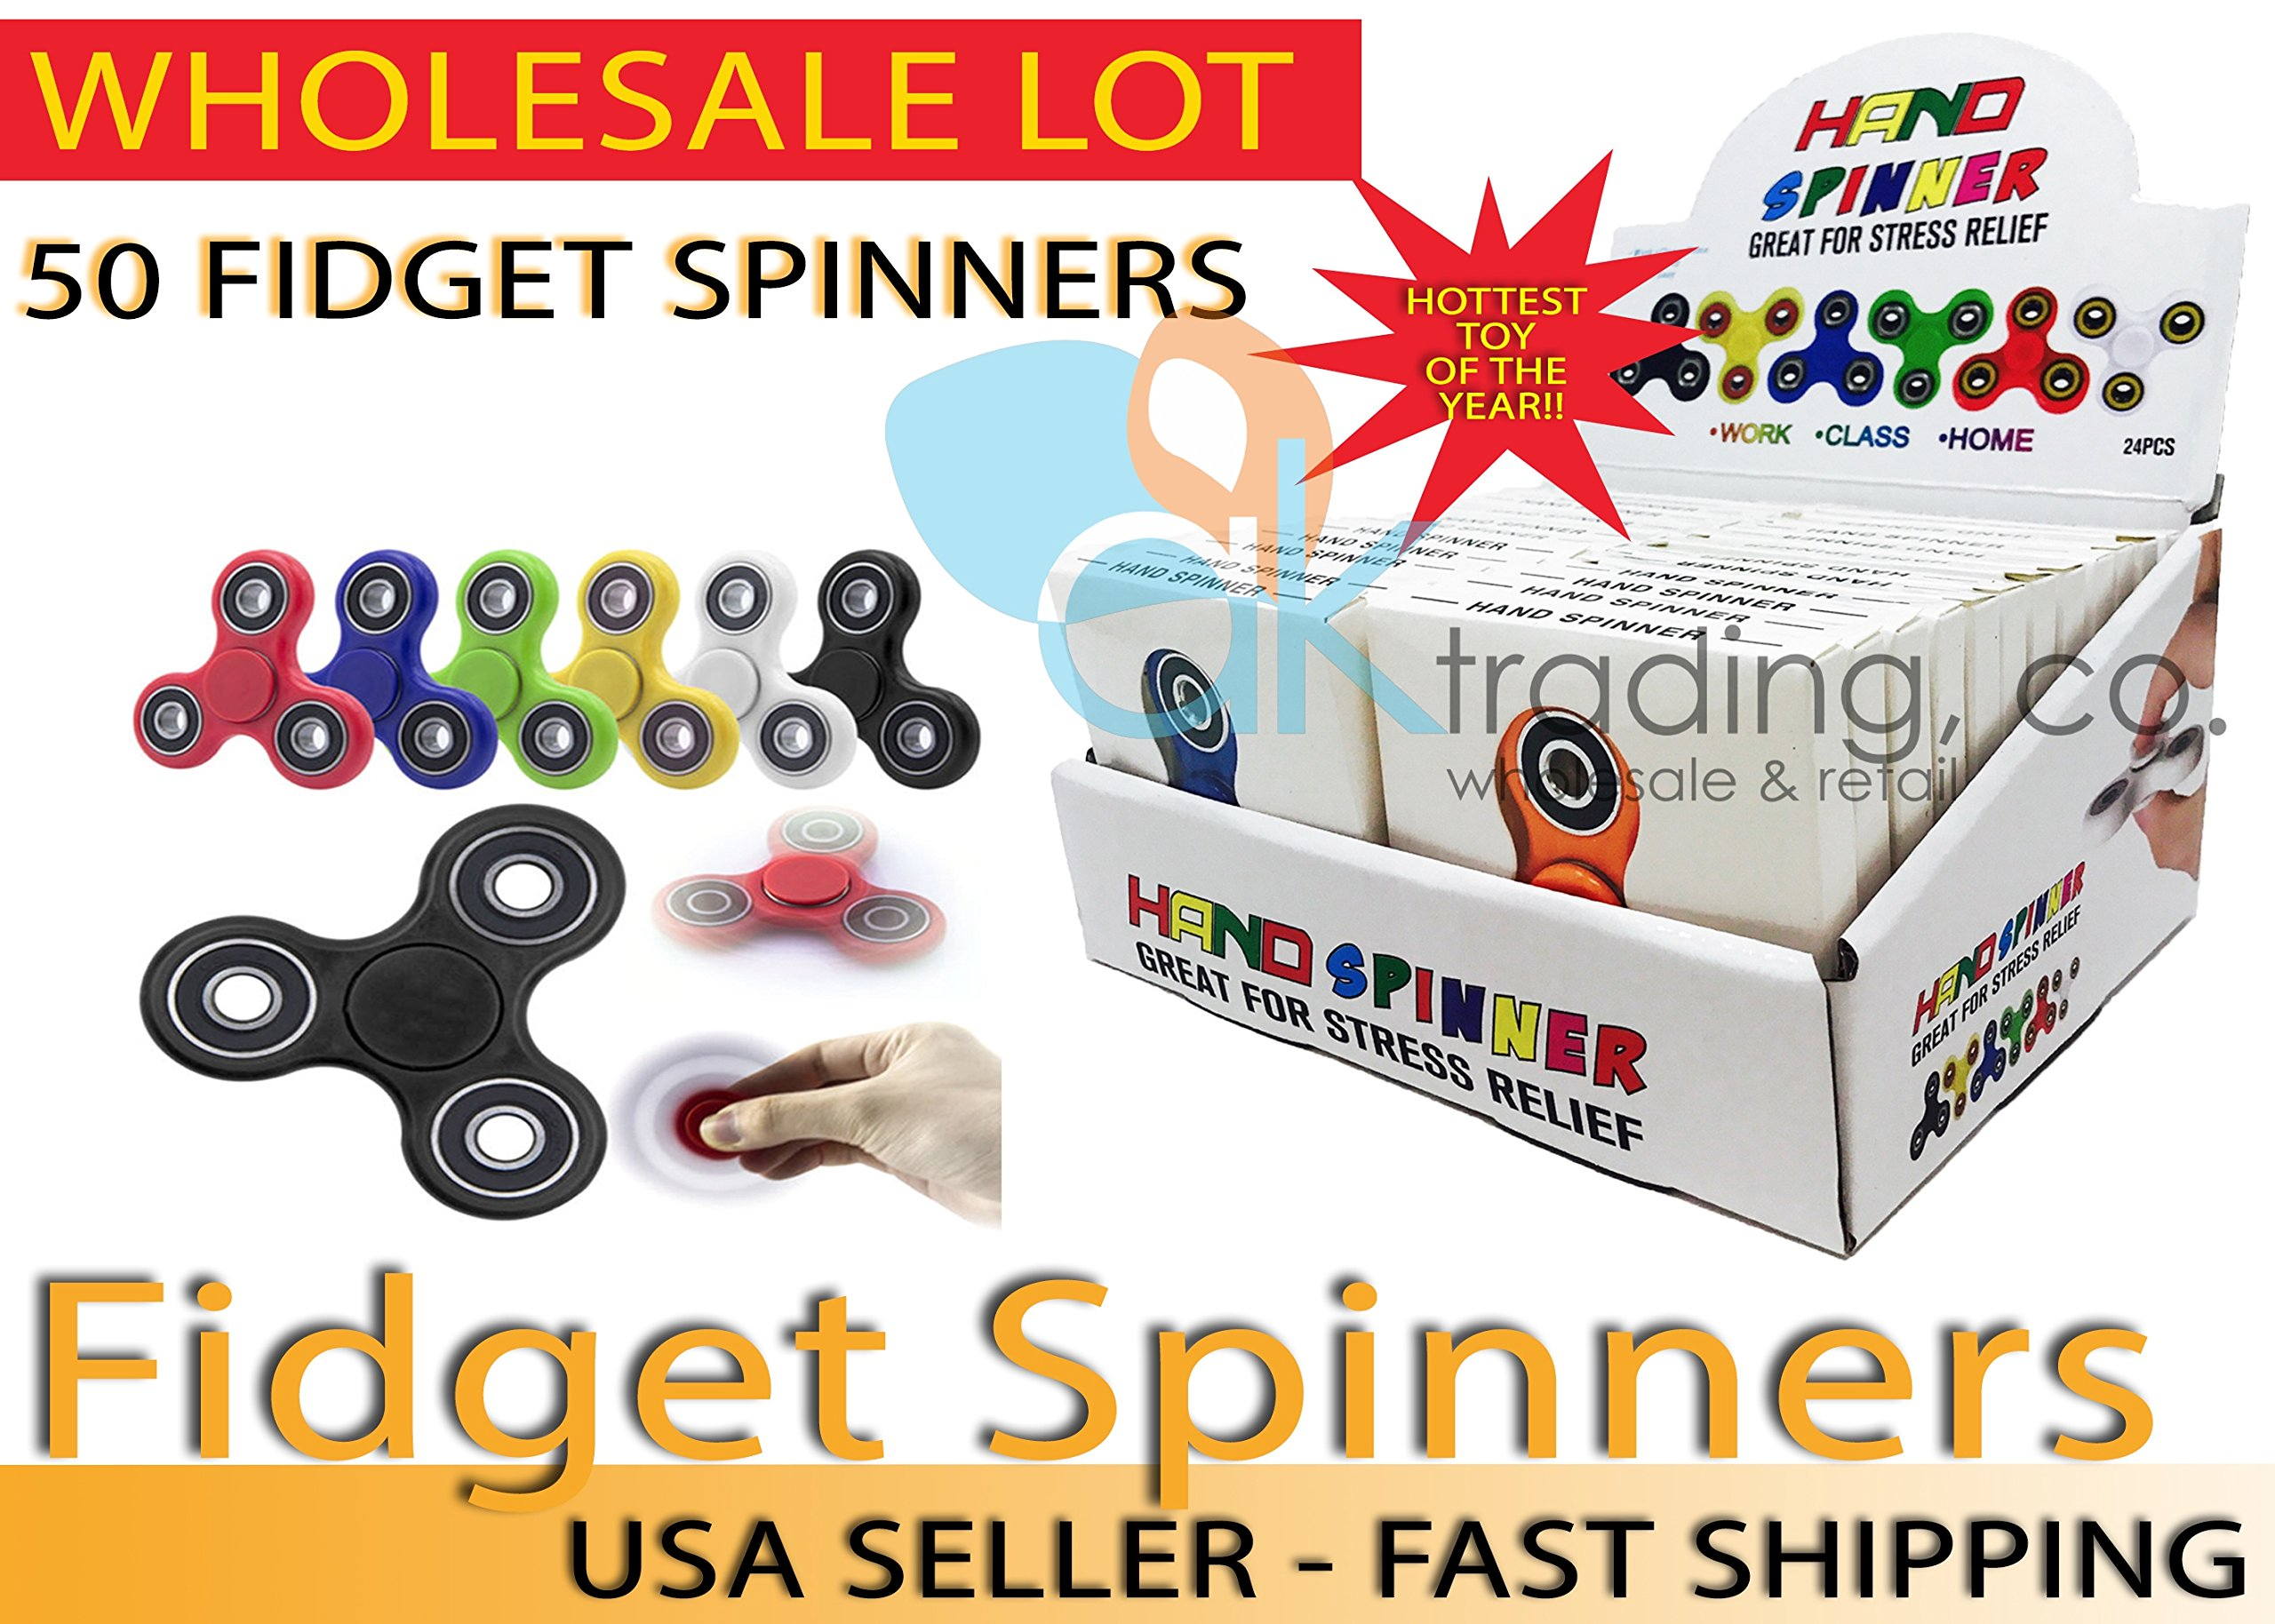 AK TRADING - LOT of 50 - Tri Spinner Fidget Gadget Hand EDC Triangle Toy Wholesale Assorted Colors (Bulk LOT of 50)- Ships Fast & Free from USA! by AK TRADING (Image #1)